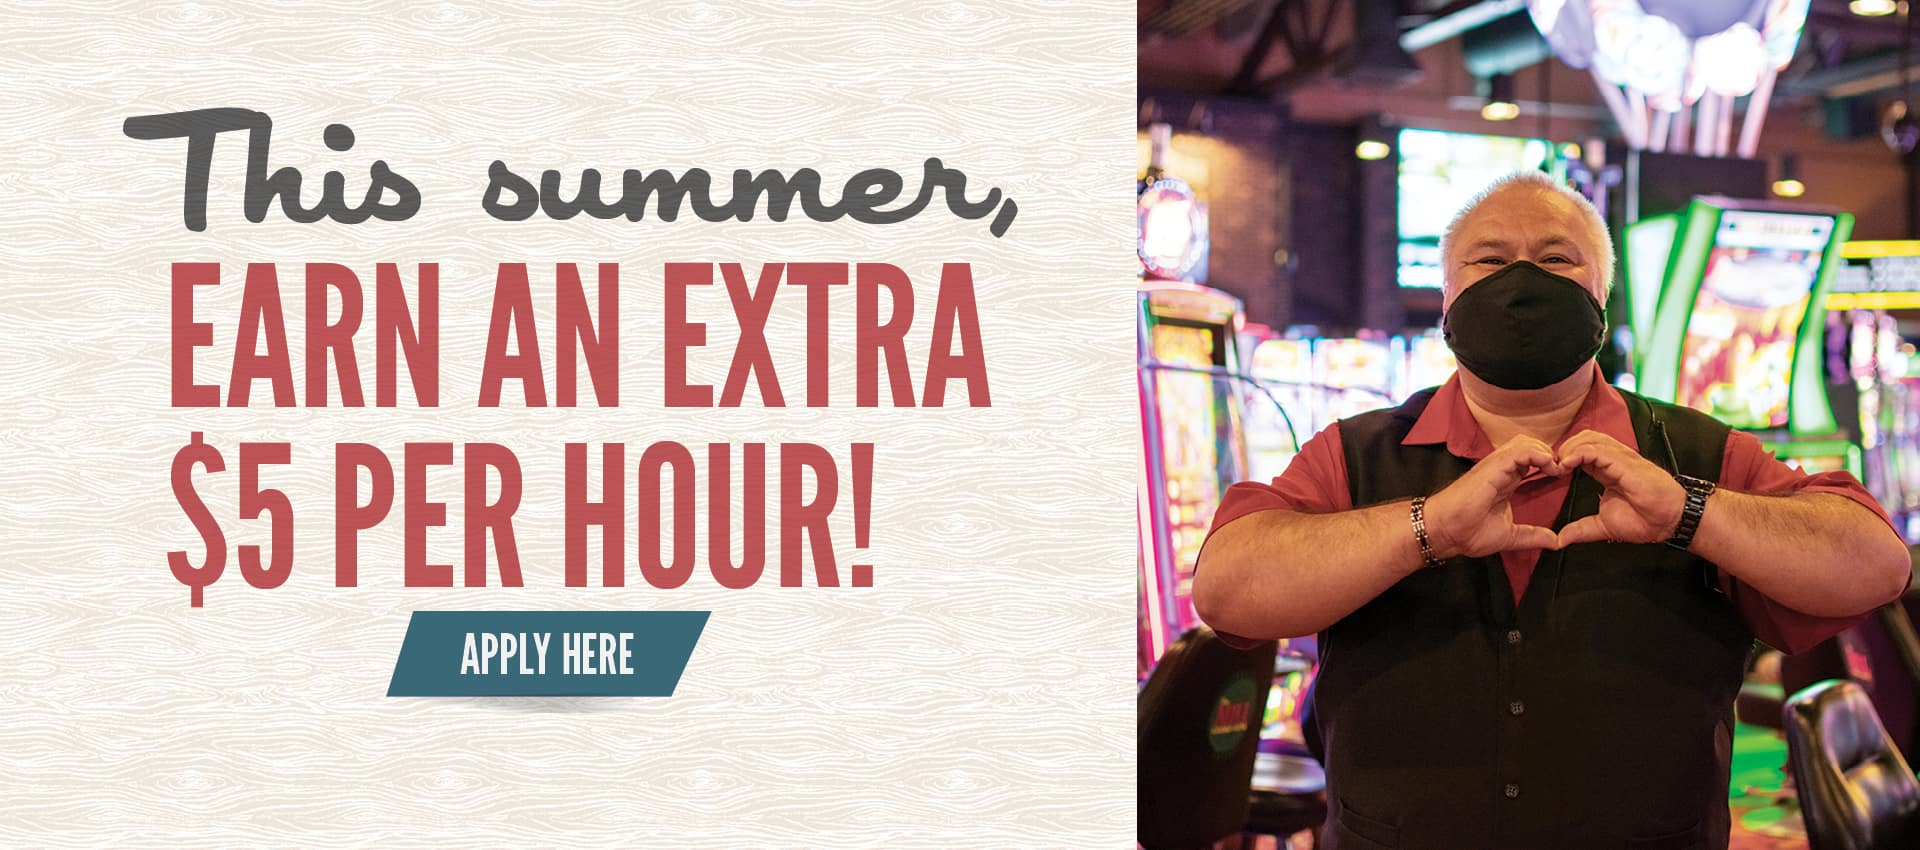 This summer, earn an extra $5 per hour! Apply here